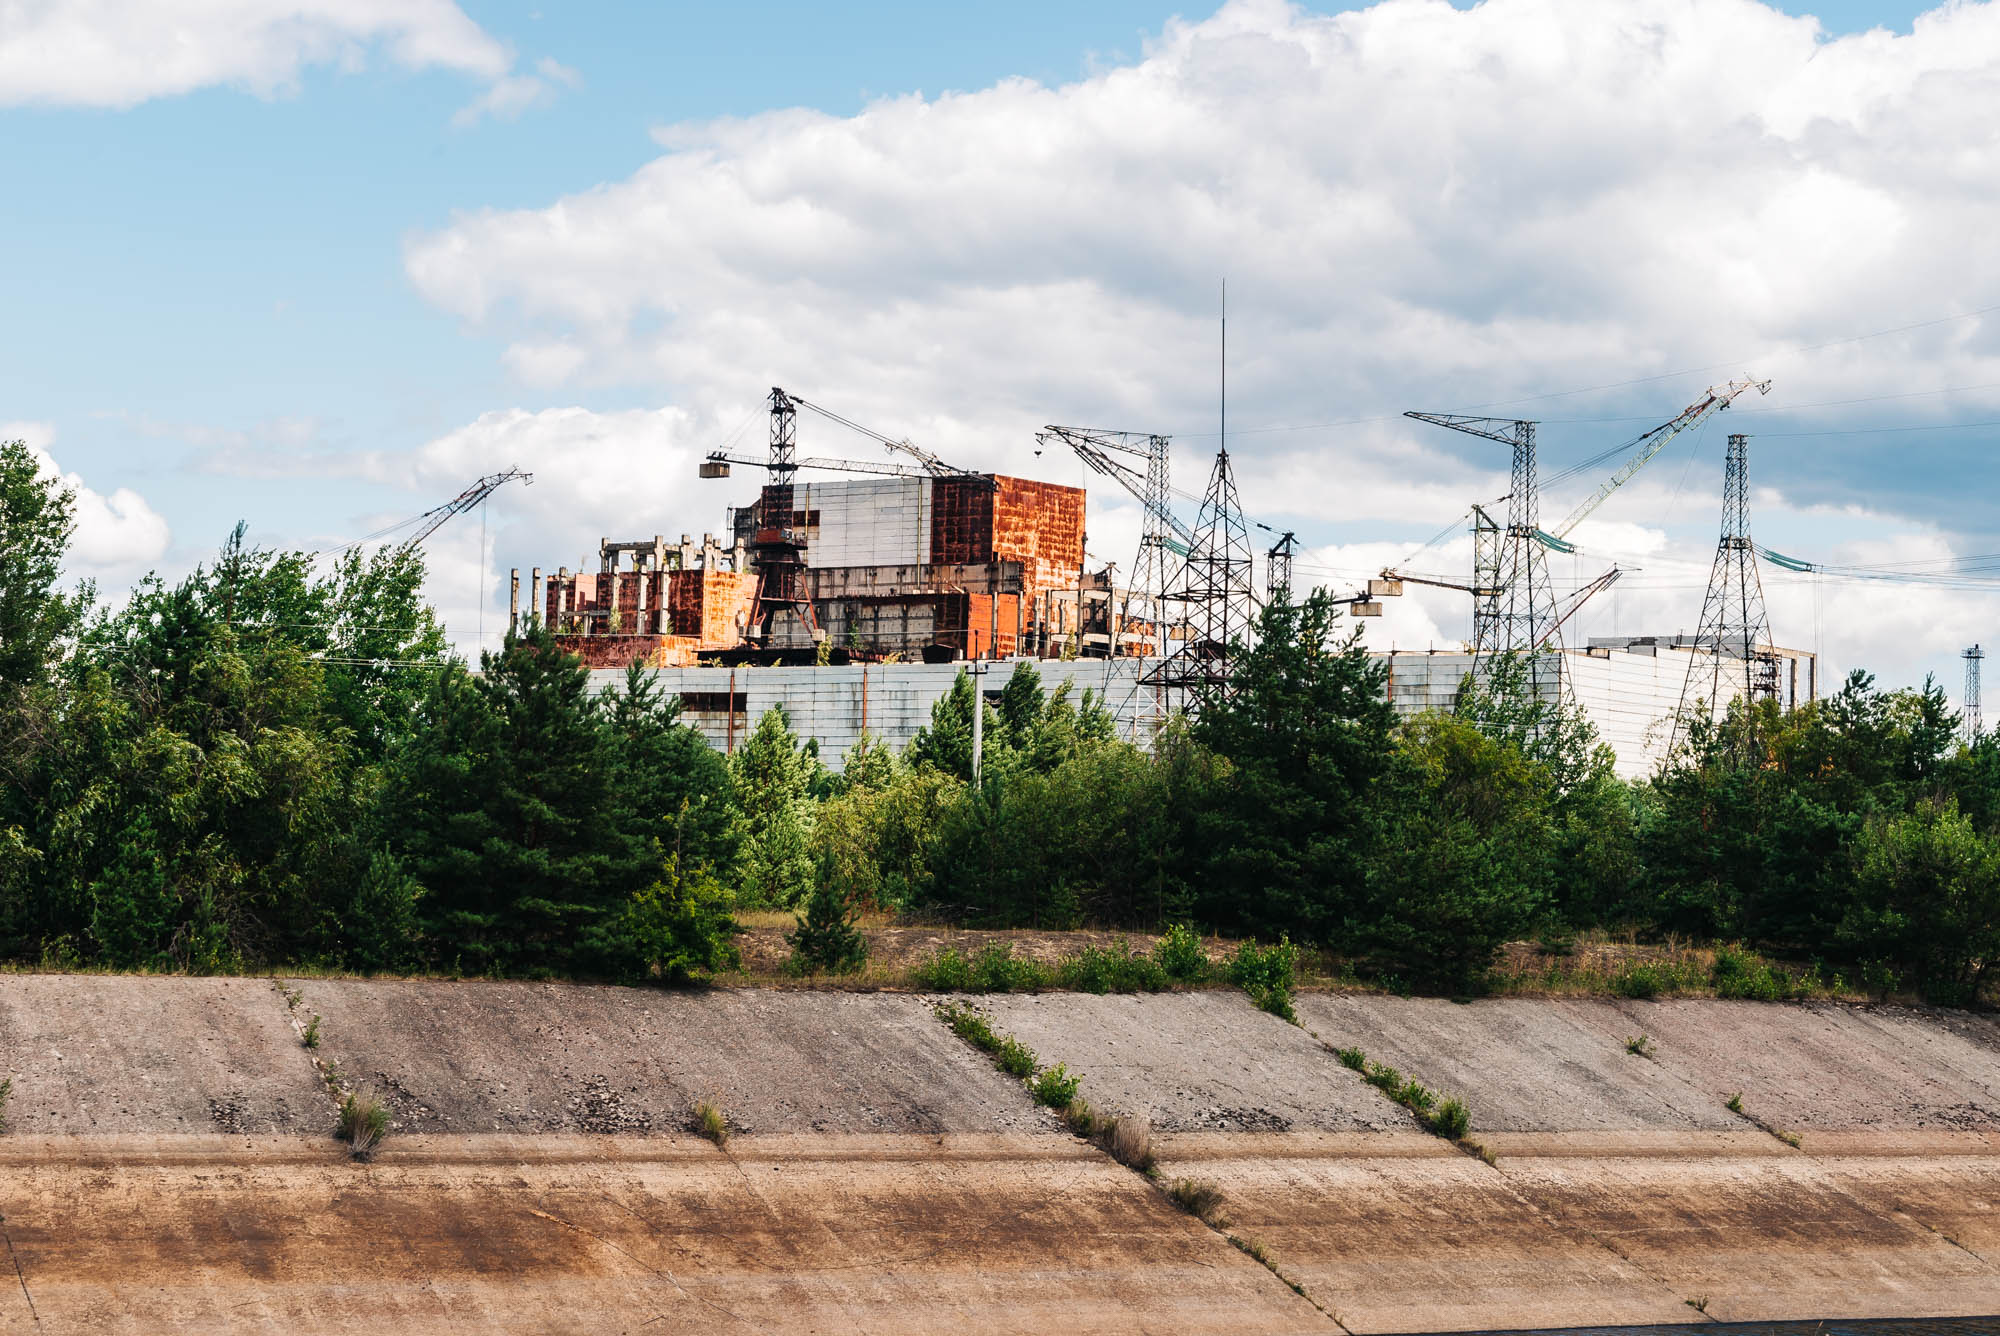 Reactor No.5 in Chernobyl that was never completed